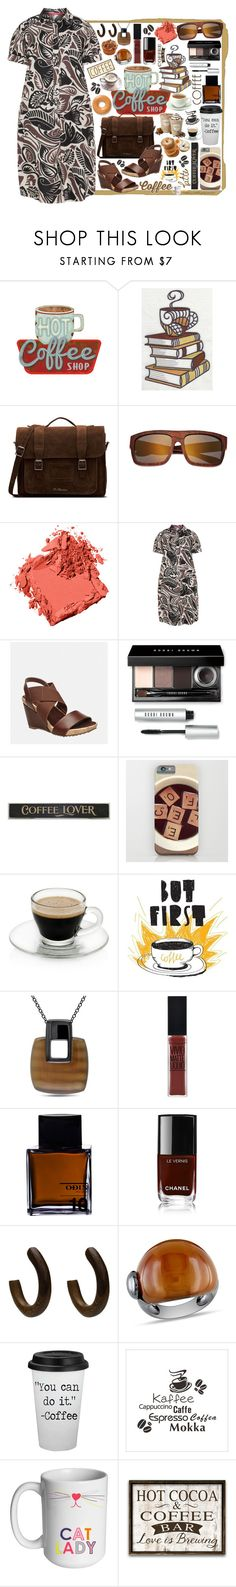 """Hot Coffee Shop!"" by curekitty ❤ liked on Polyvore featuring Coffee Shop, Dr. Martens, Earth, Bobbi Brown Cosmetics, Marina Rinaldi, Avenue, DutchCrafters, Catherine Catherine Malandrino, Maybelline and Odin"